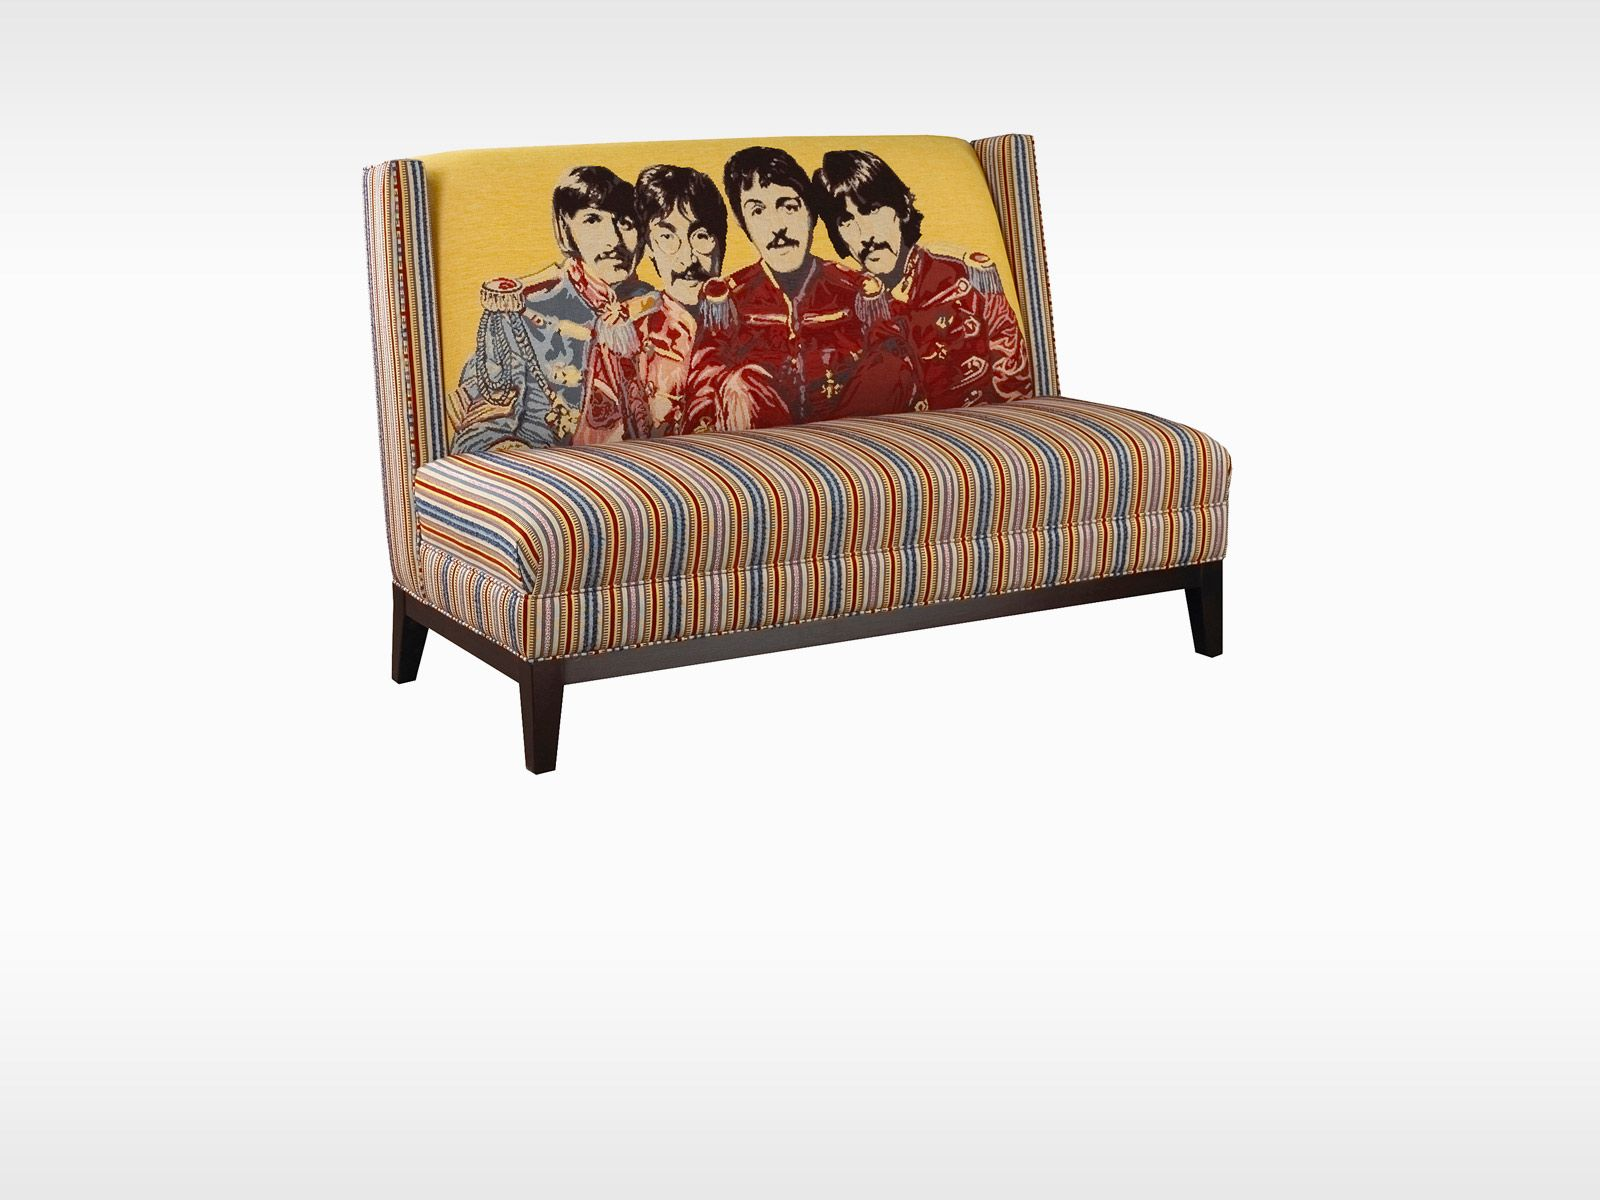 the fab 4 sofa by brentwood design is abundant with this armless